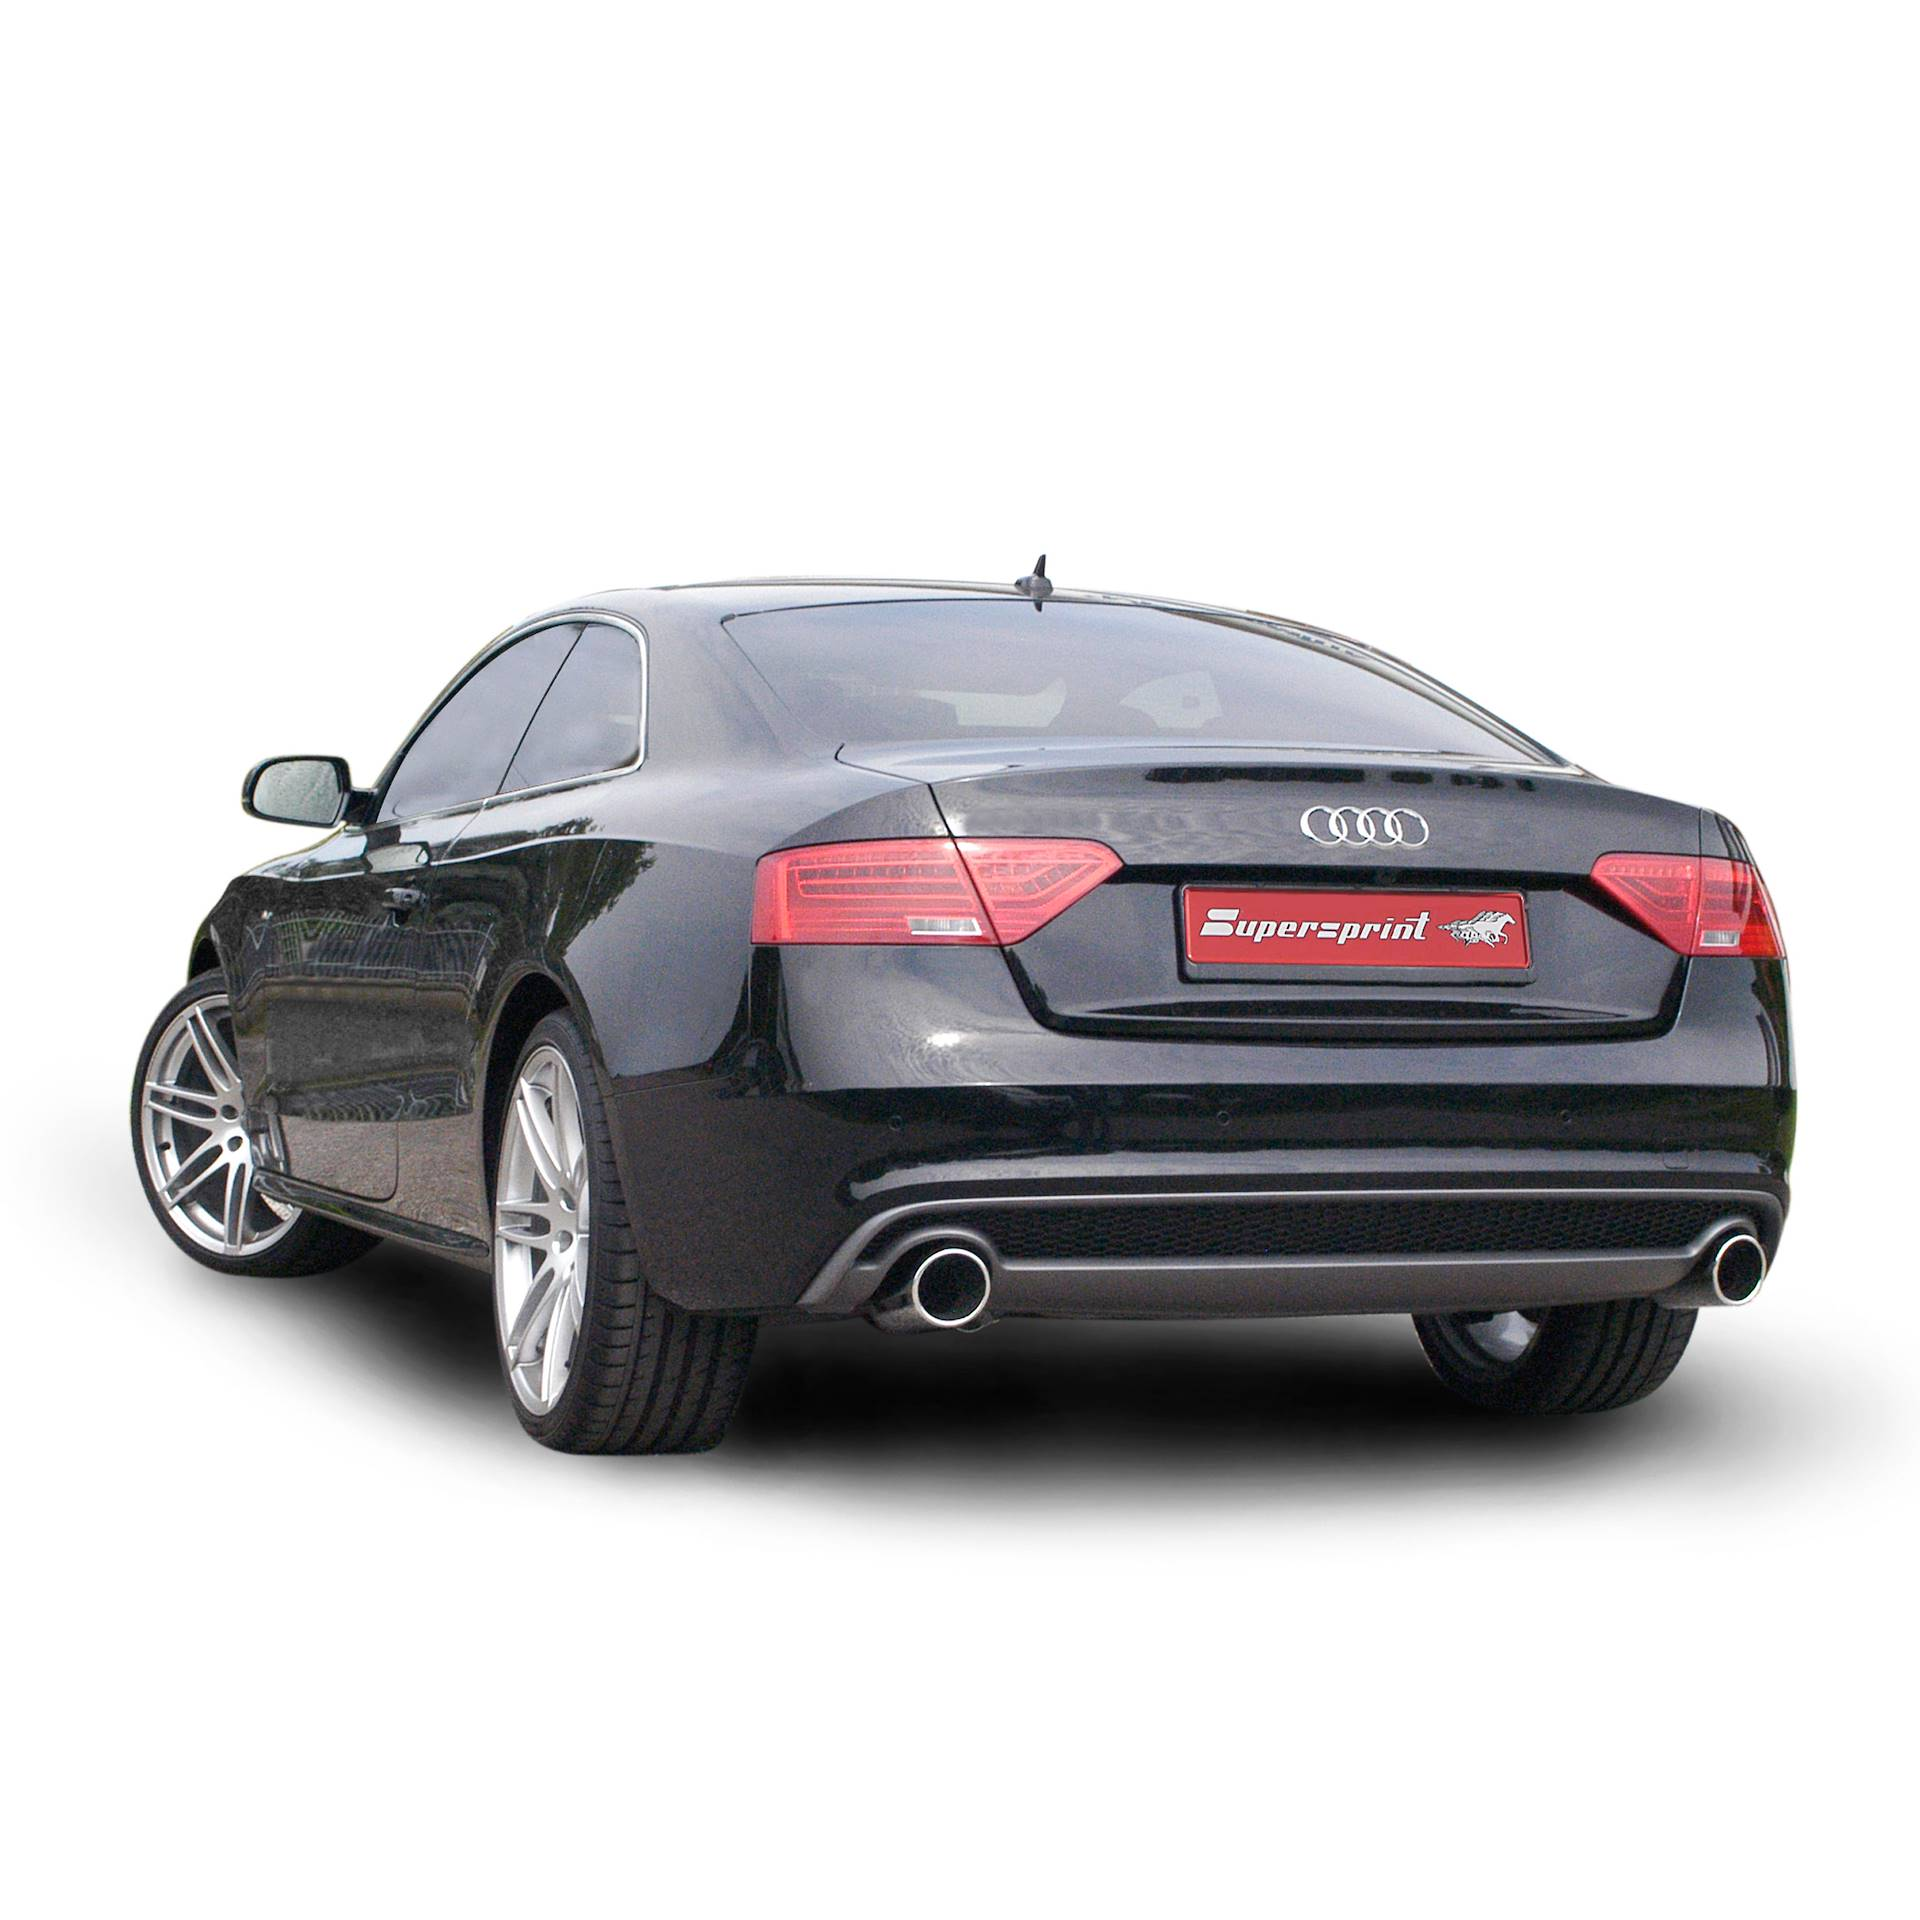 Audi - AUDI A5 Coupè/Cabrio 2.0 TFSI (180 PS - 211 - 224 PS) '08 ->(Ø80mm)